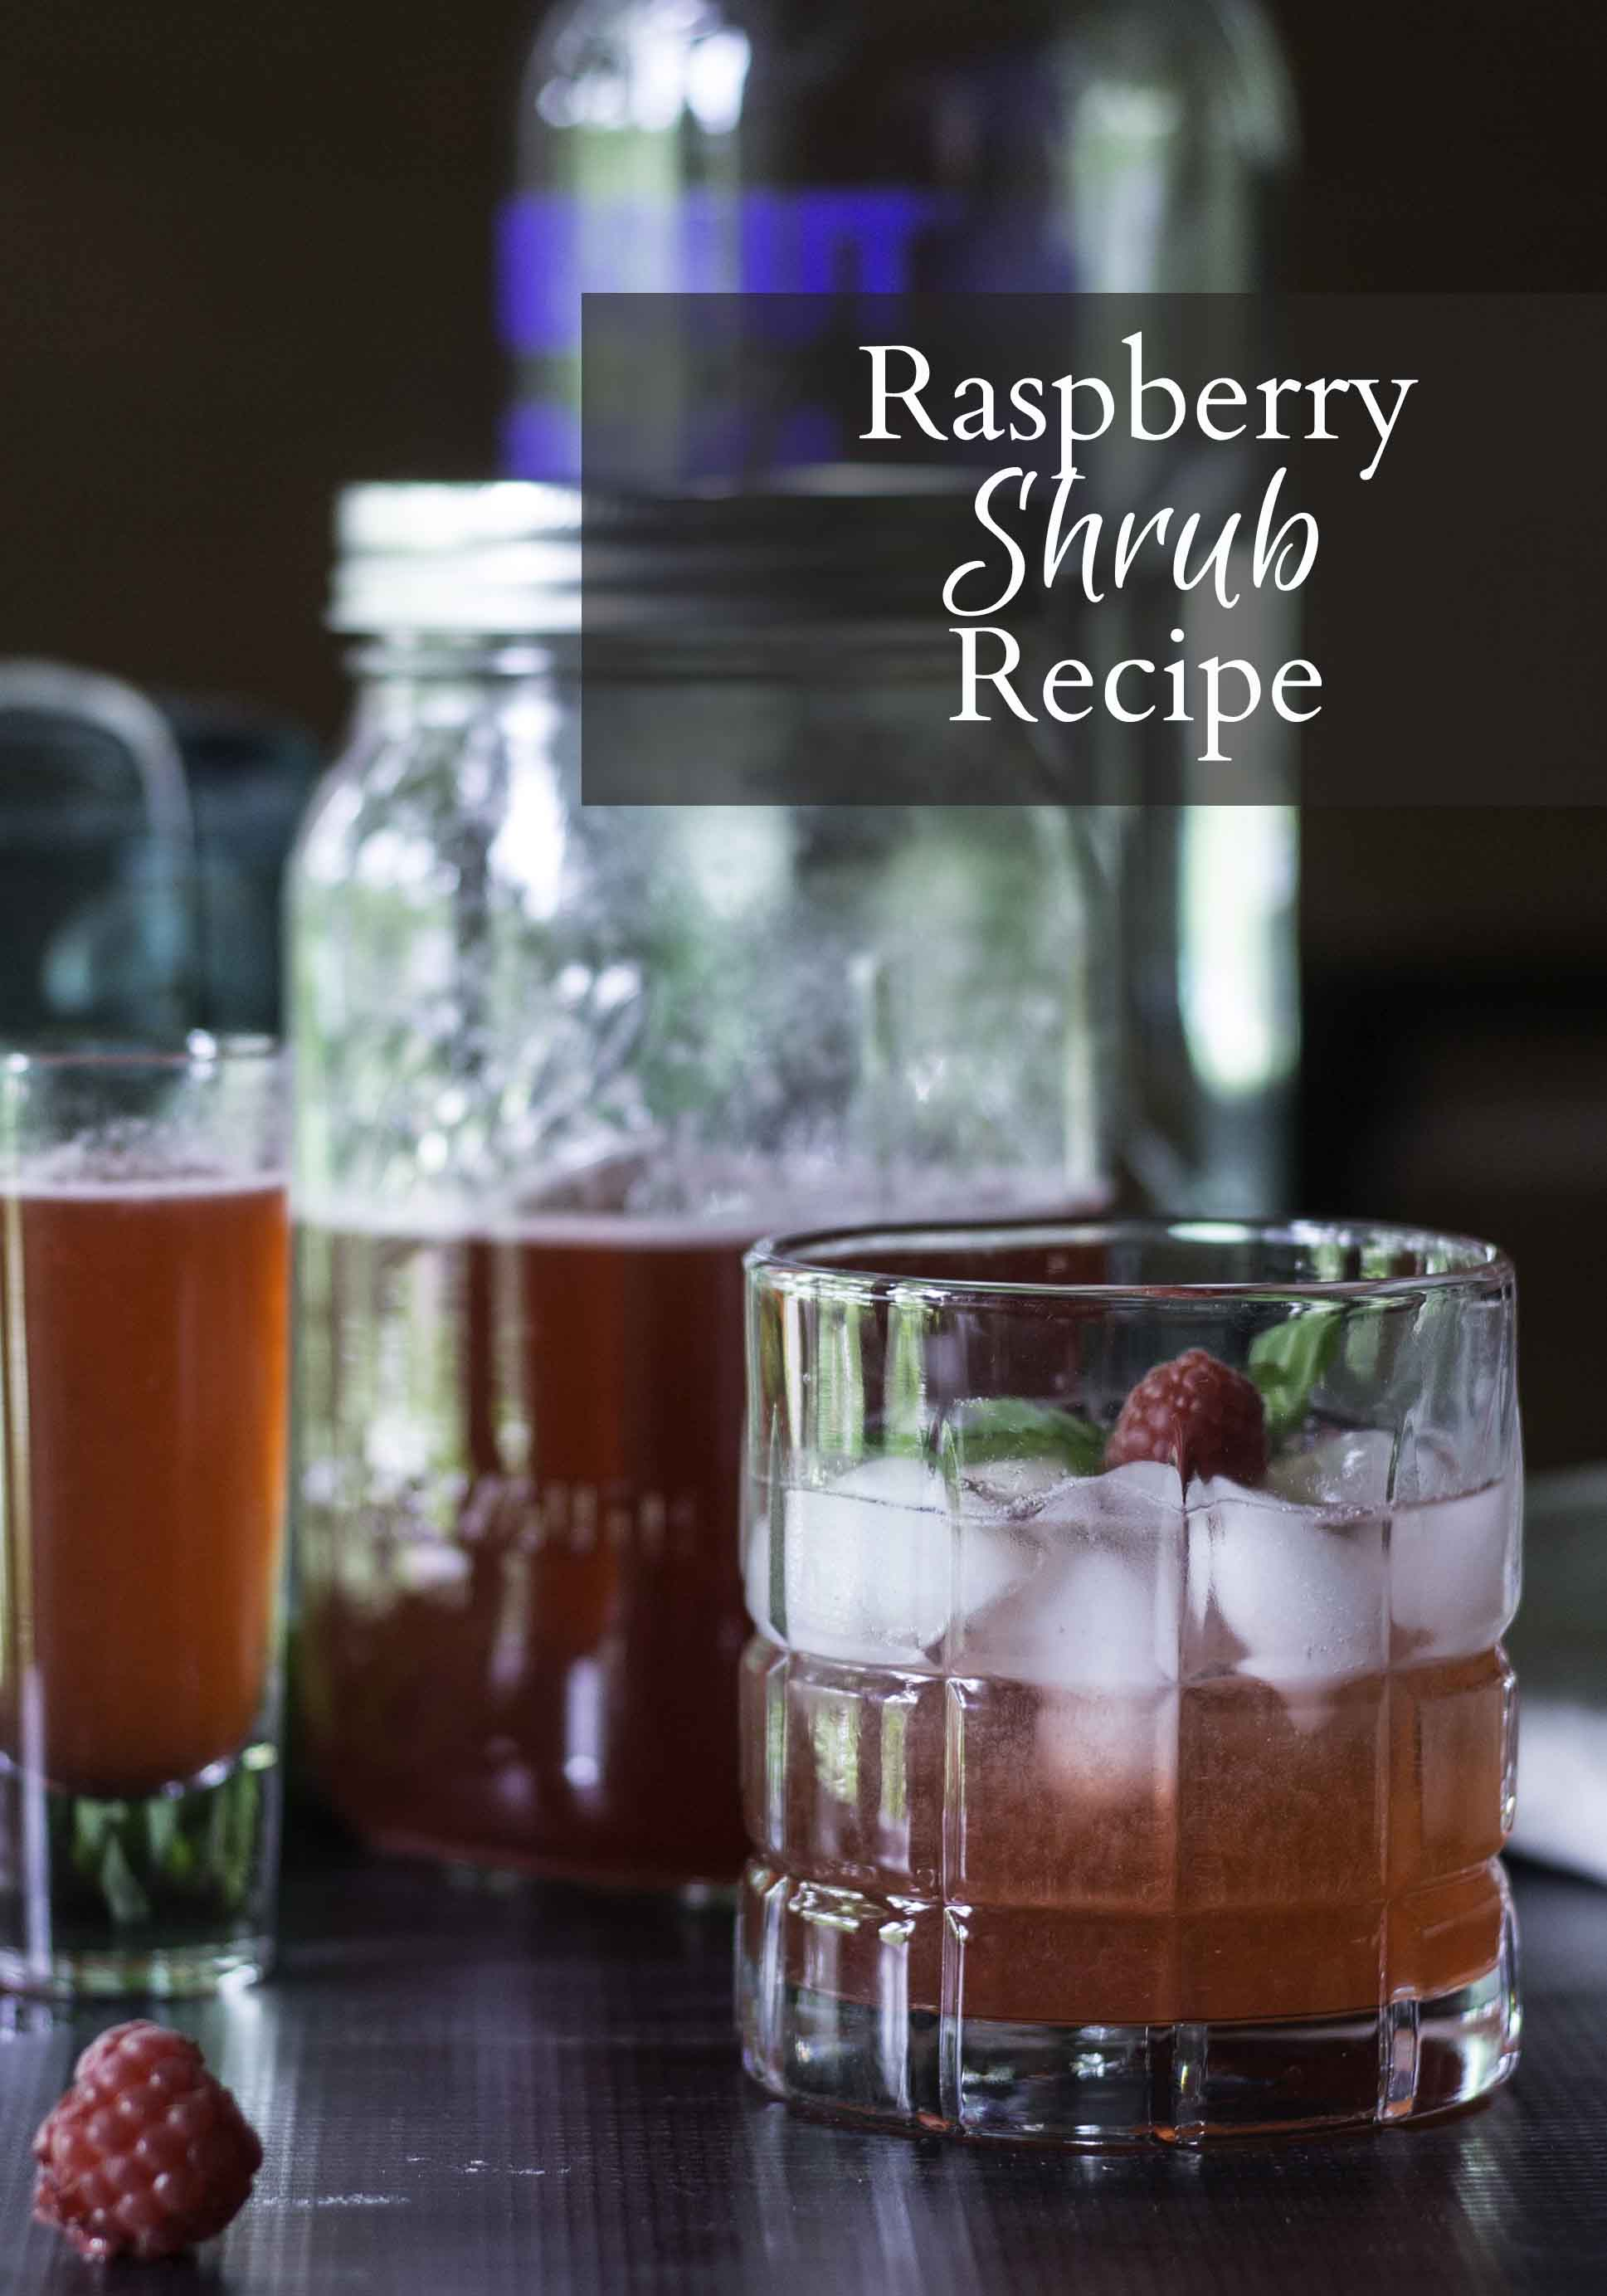 Learn how to make a drink made from fruit and vinegar with this raspberry shrub recipe. Get creative with the many possible combinations to try.